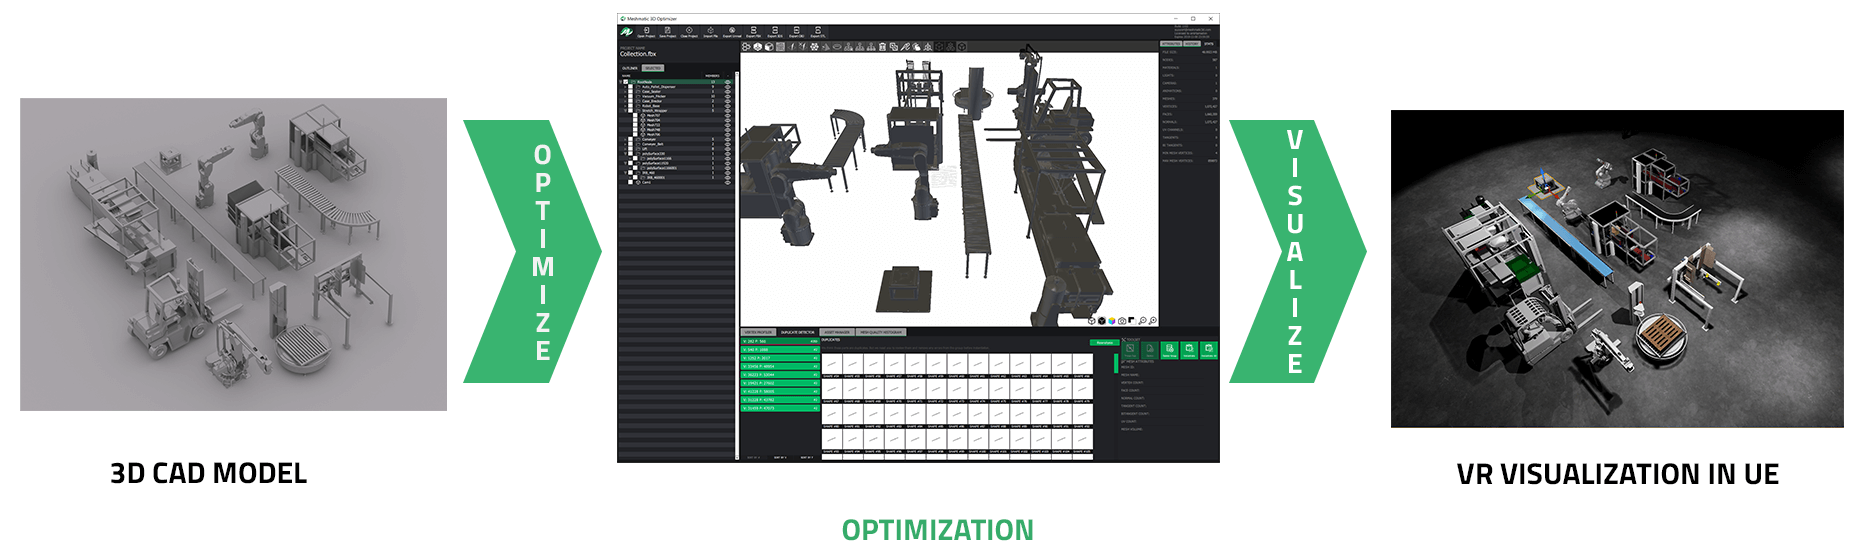 Optimize-CAD-for-VR-using-Meshmatic-pipeline